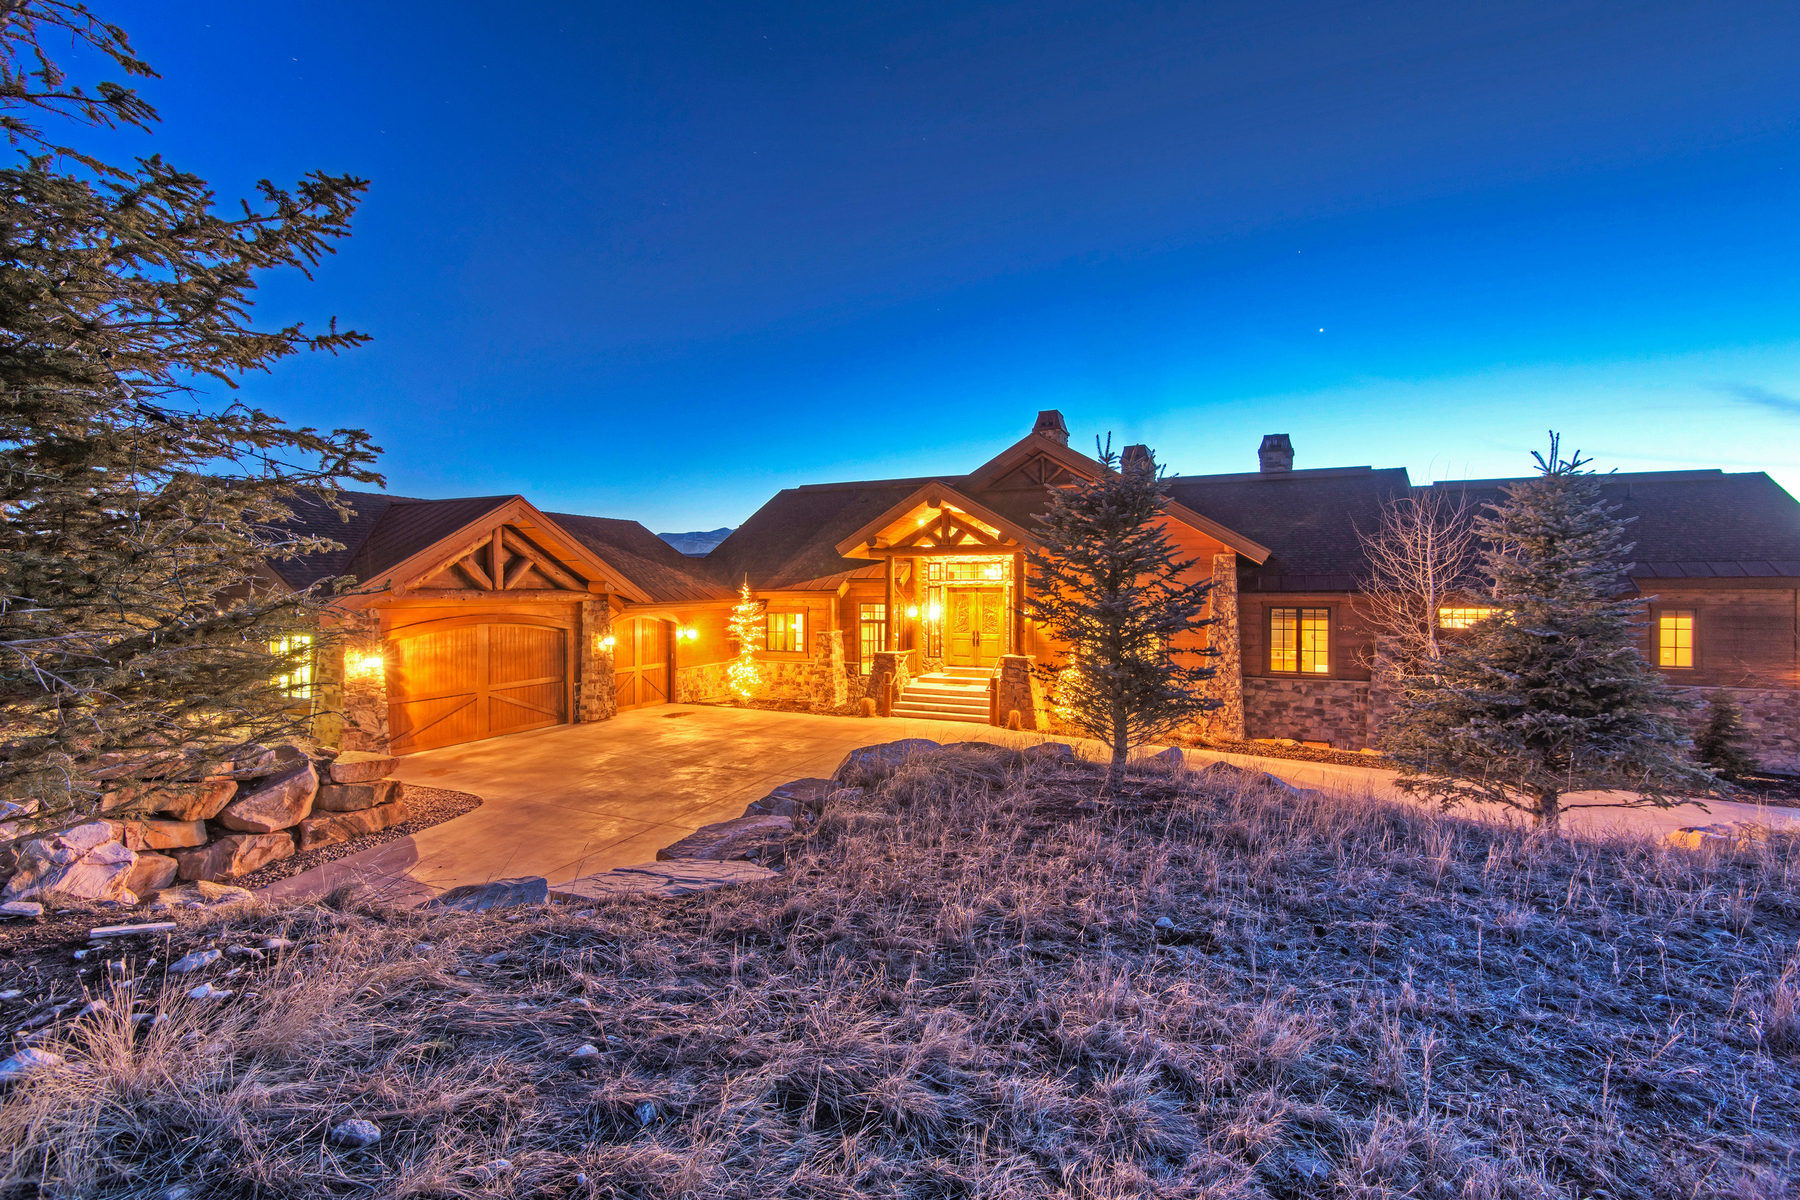 Casa Unifamiliar por un Venta en Pristine Mountain Lodge Home in Promontory with Panoramic Mountain Views 6262 Dakota Trail Lot #32 Park City, Utah 84098 Estados Unidos